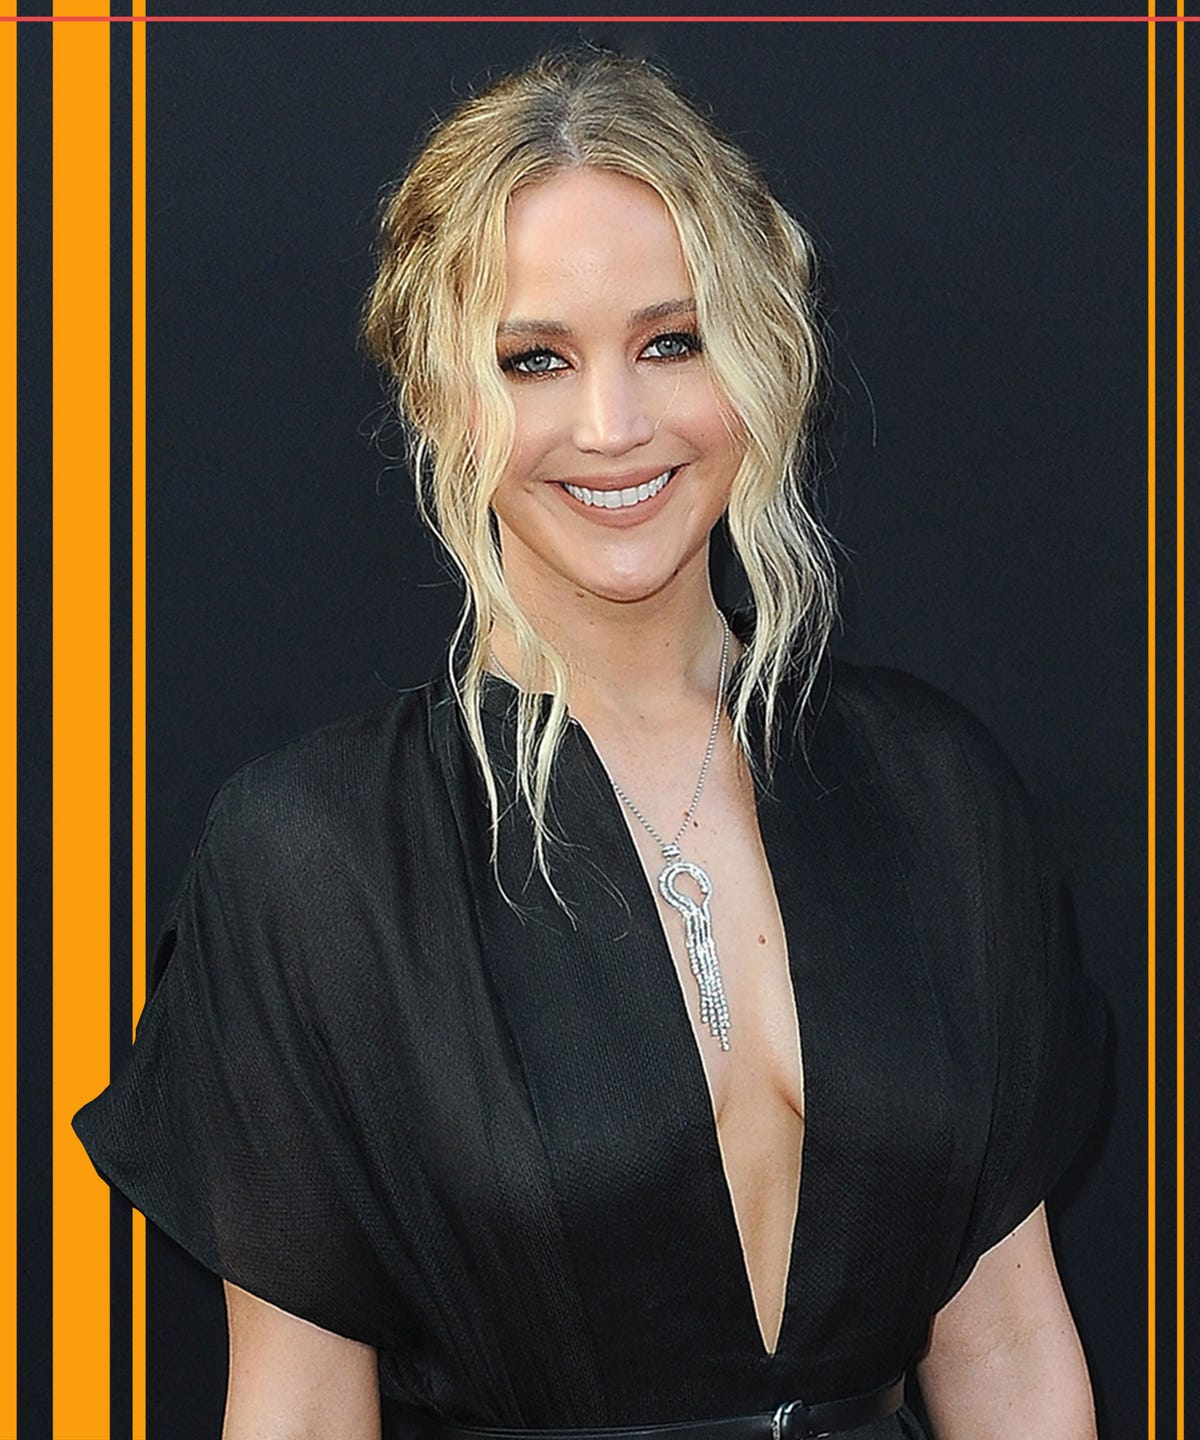 Jennifer Lawrence Stars In Mob Girl By Paolo Sorrentino